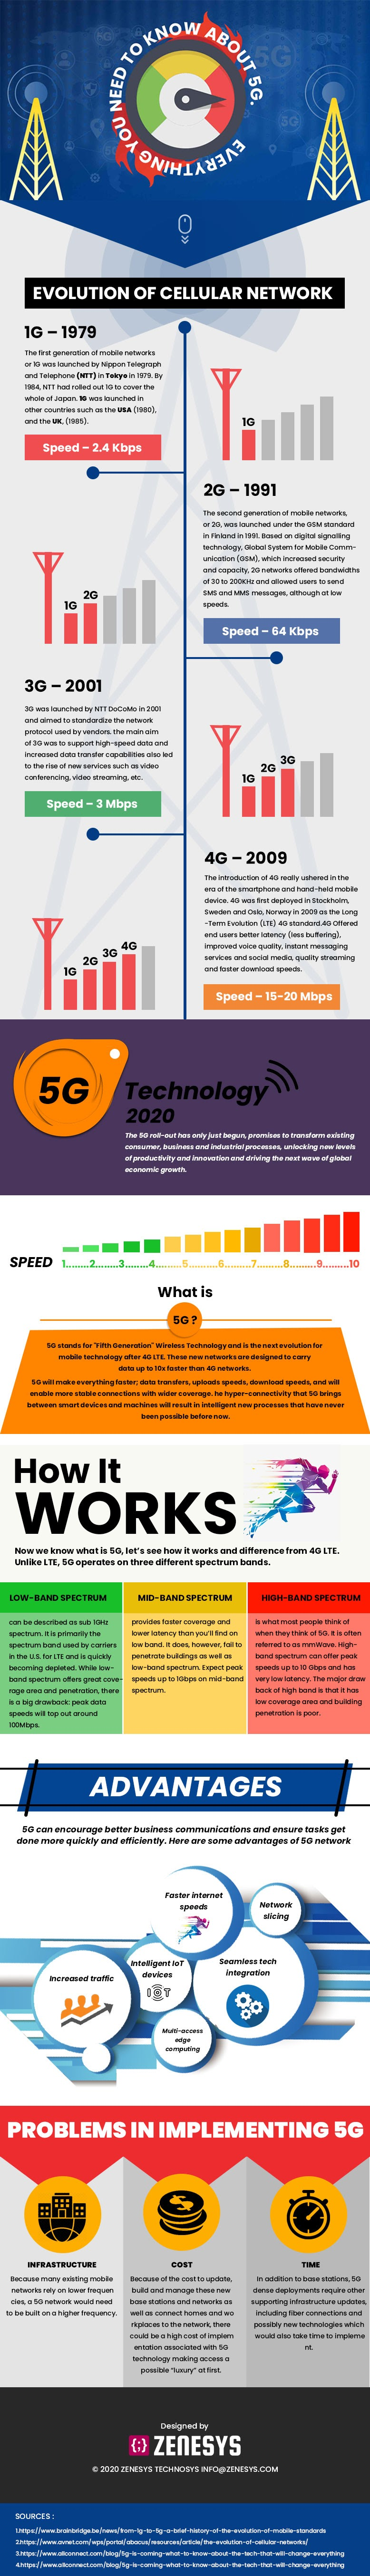 Everything you need to know about 5G #infographic